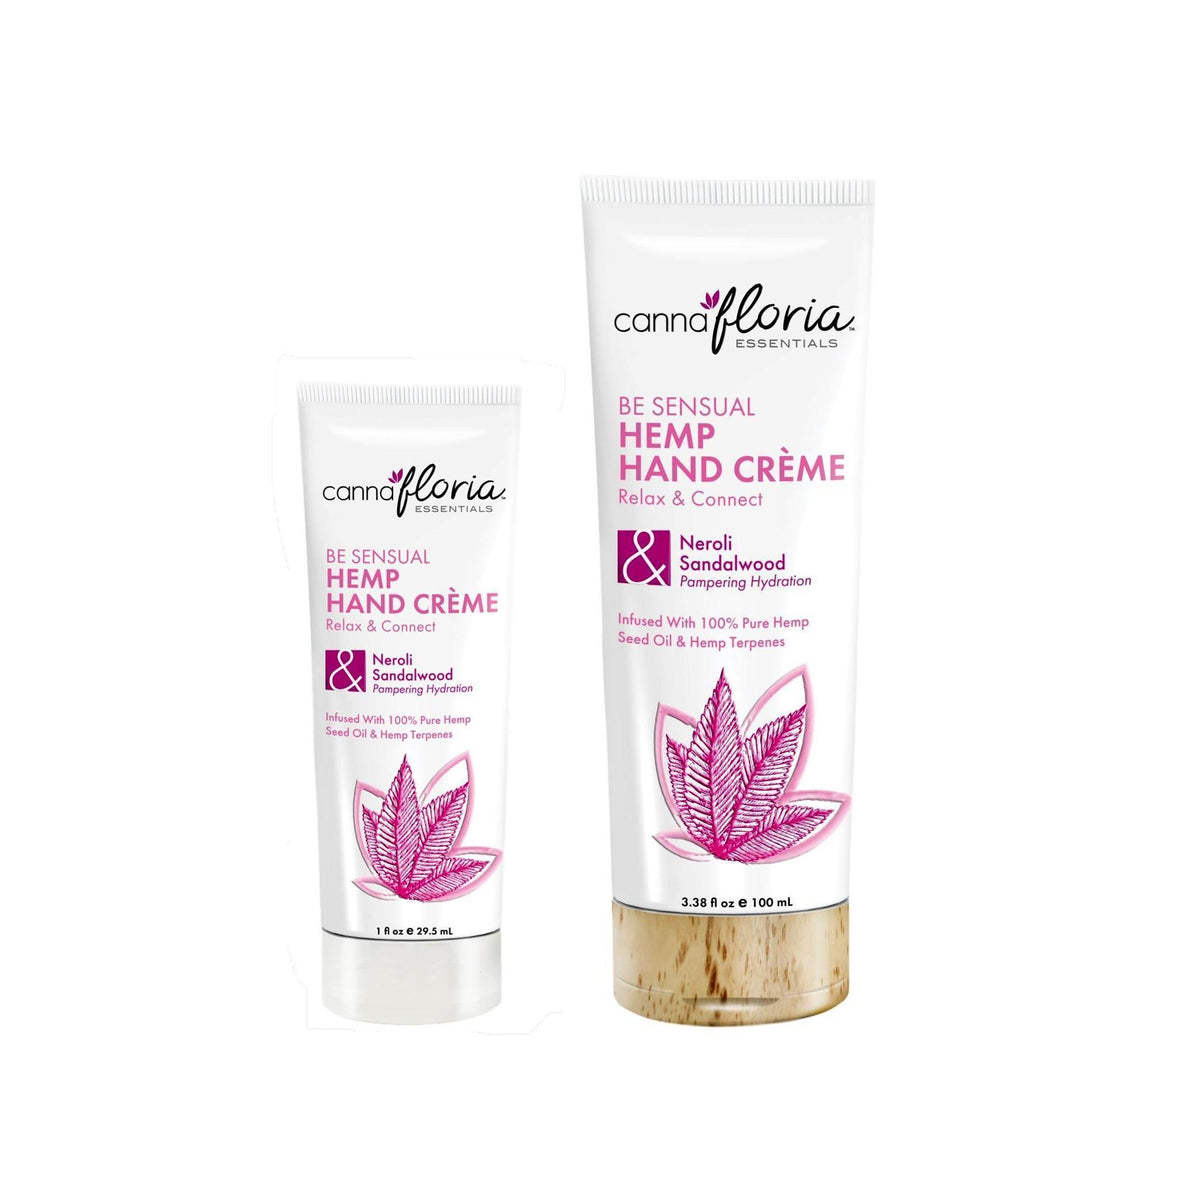 Makeup, Skin & Personal Care Cannafloria Hemp Hand Crème, Be Sensual